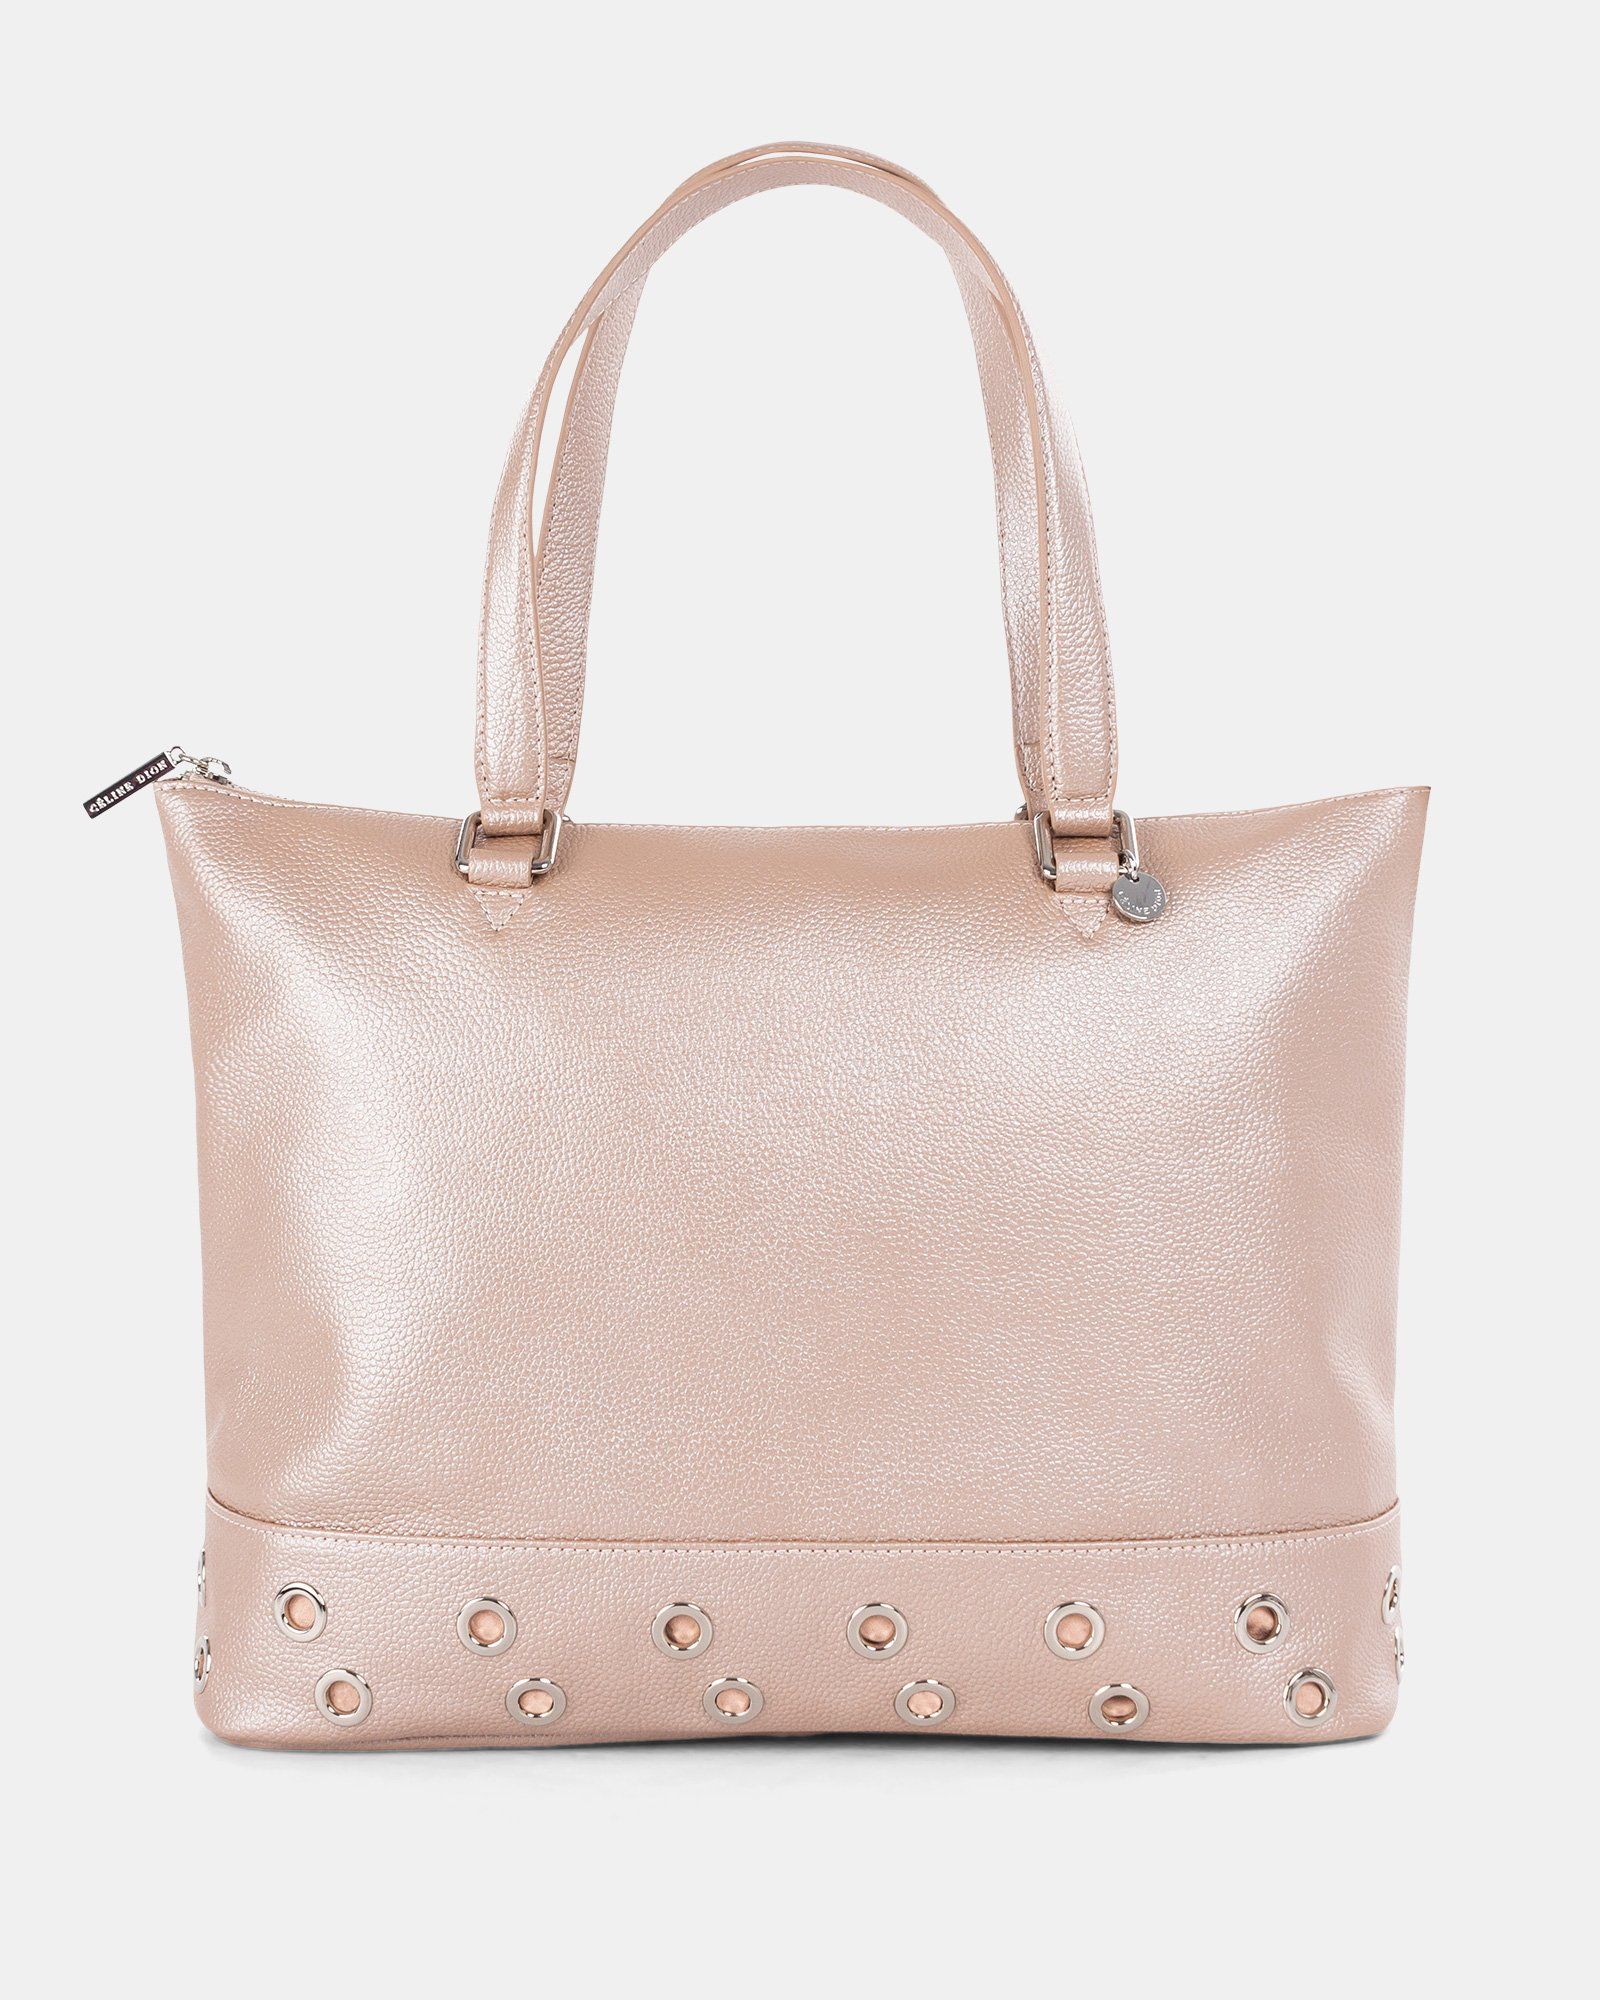 FALSETTO - LEATHER TOTE BAG WITH RFID PROTECTION - rosegold - Céline Dion - Zoom